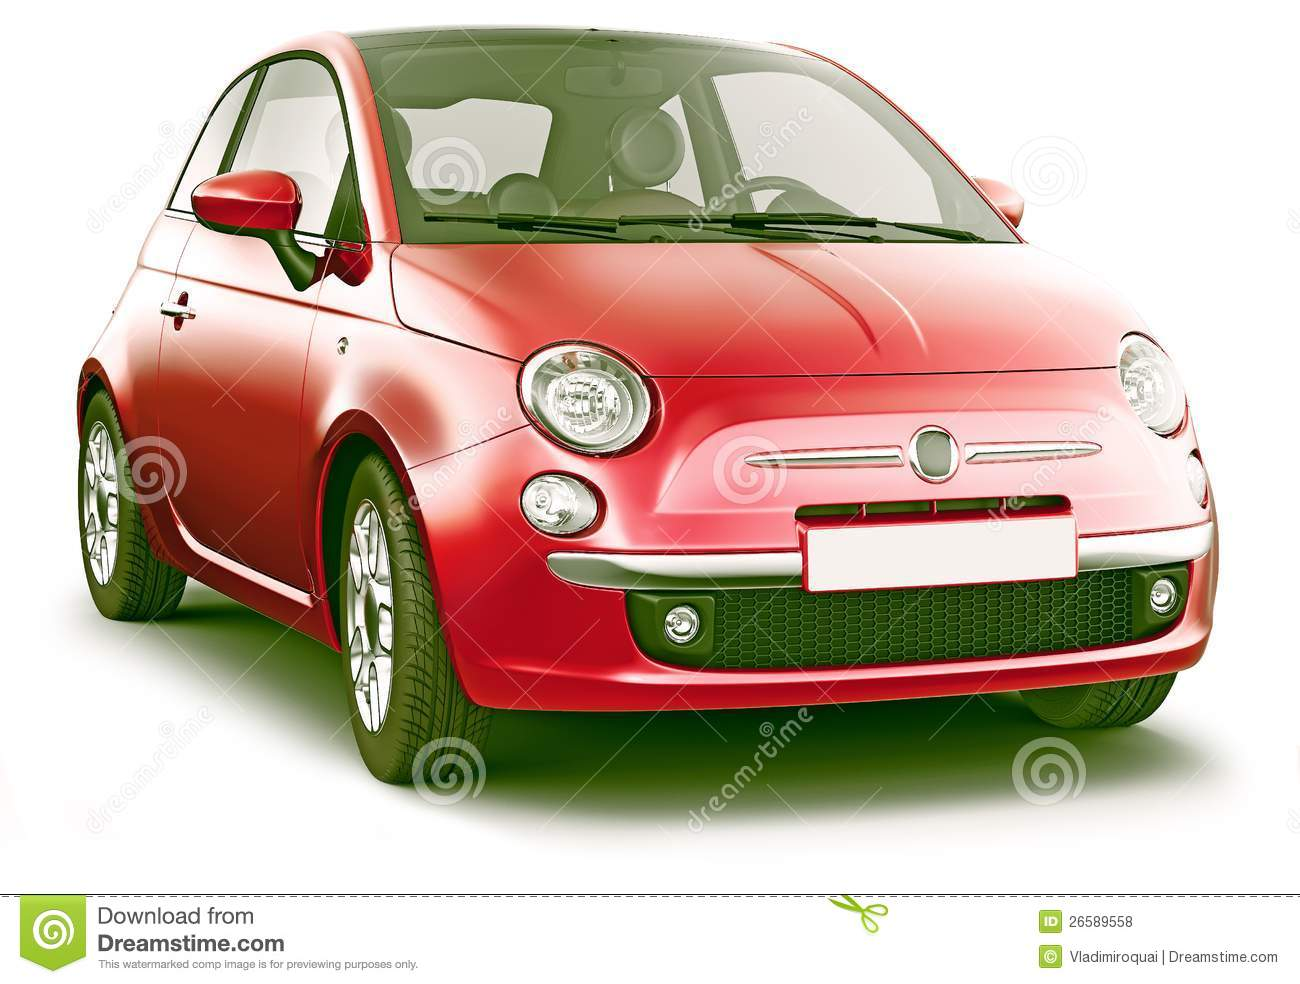 royalty free stock photos red compact hatchback image 26589558. Black Bedroom Furniture Sets. Home Design Ideas